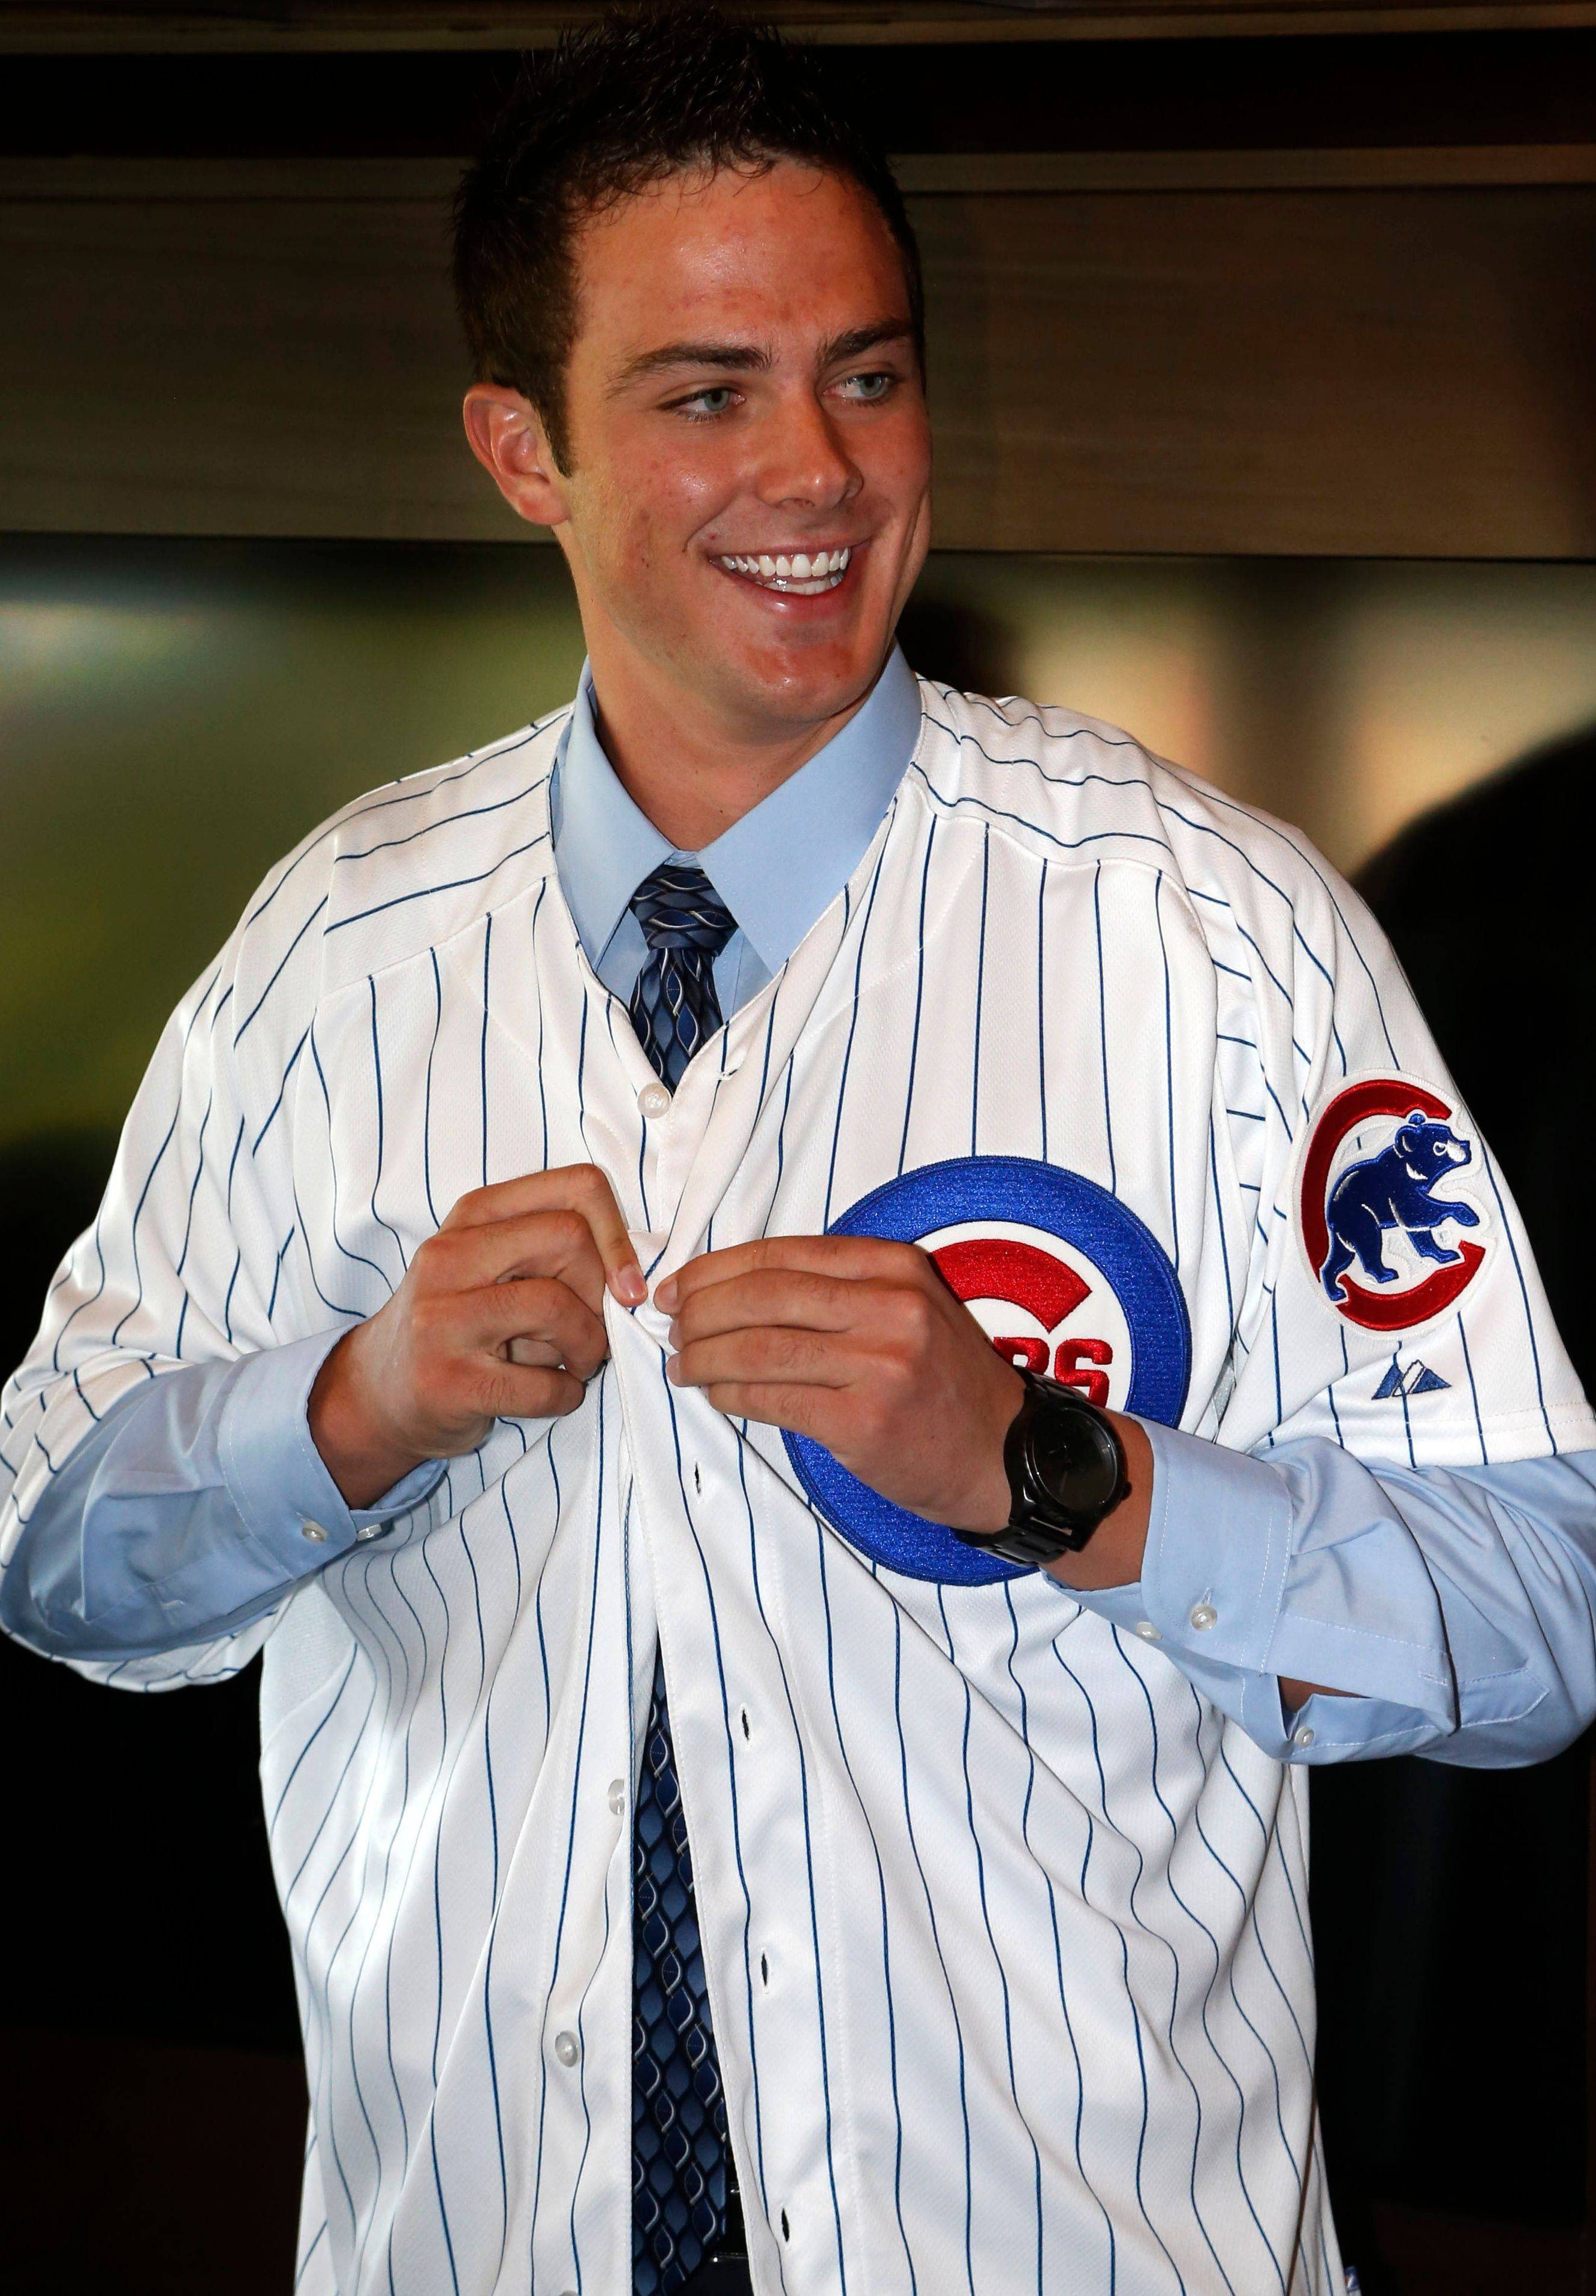 Chicago Cubs' first-round draft pick, third baseman Kris Bryant smiles as he puts on his jersey during a news conference where he was introduced to the media before a baseball game between the Chicago Cubs and the St. Louis Cardinals Friday, July 12 2013, in Chicago.